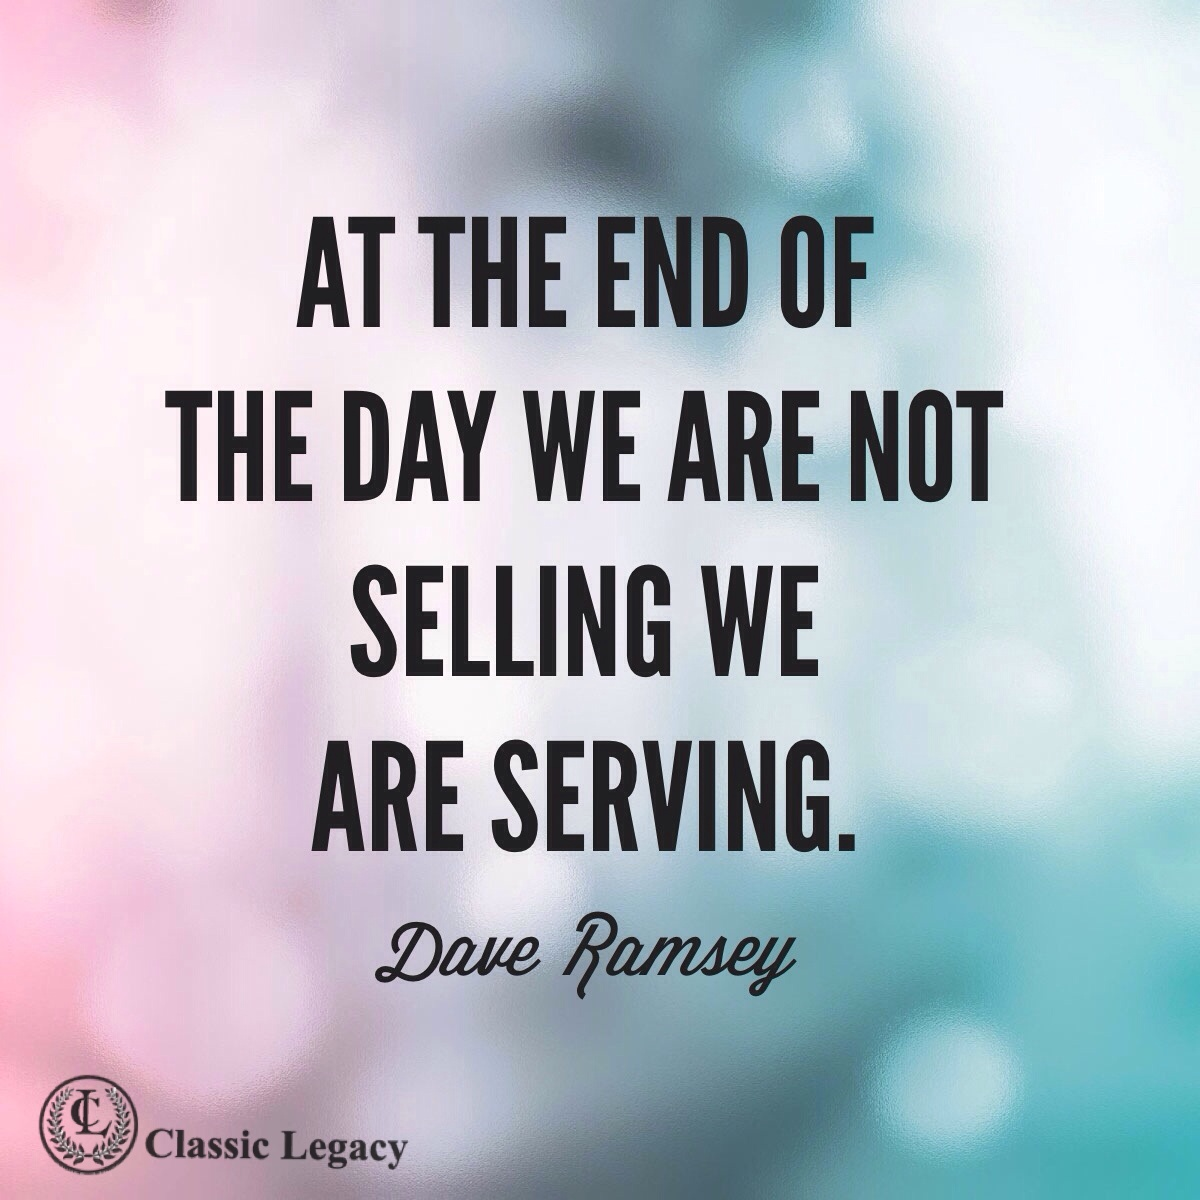 Quote Not Selling Serving Dave Ramsey